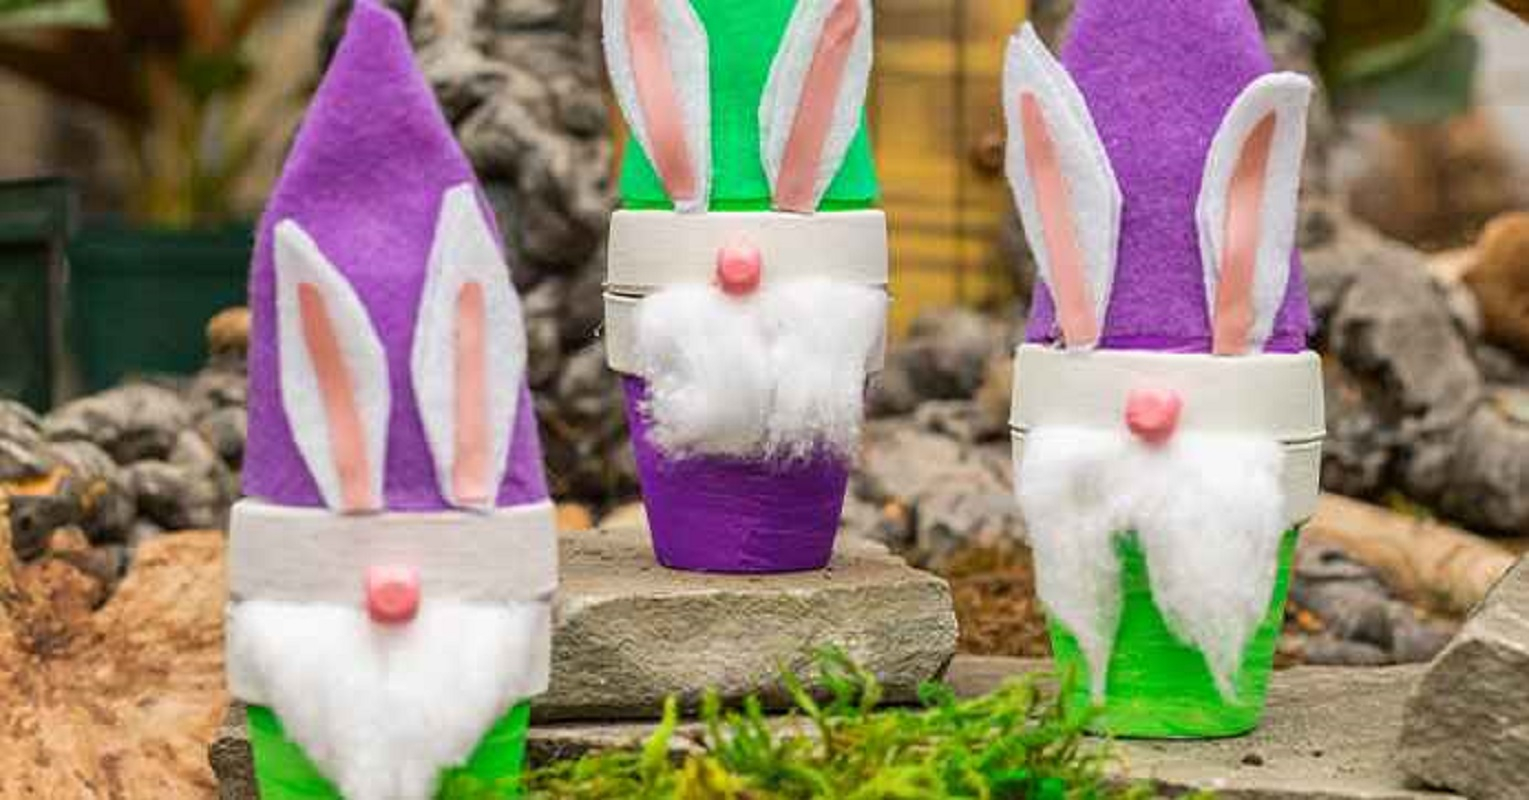 9 DIY Ideas For Easter Eggs And Decorations That You Can Make Together With Your Family